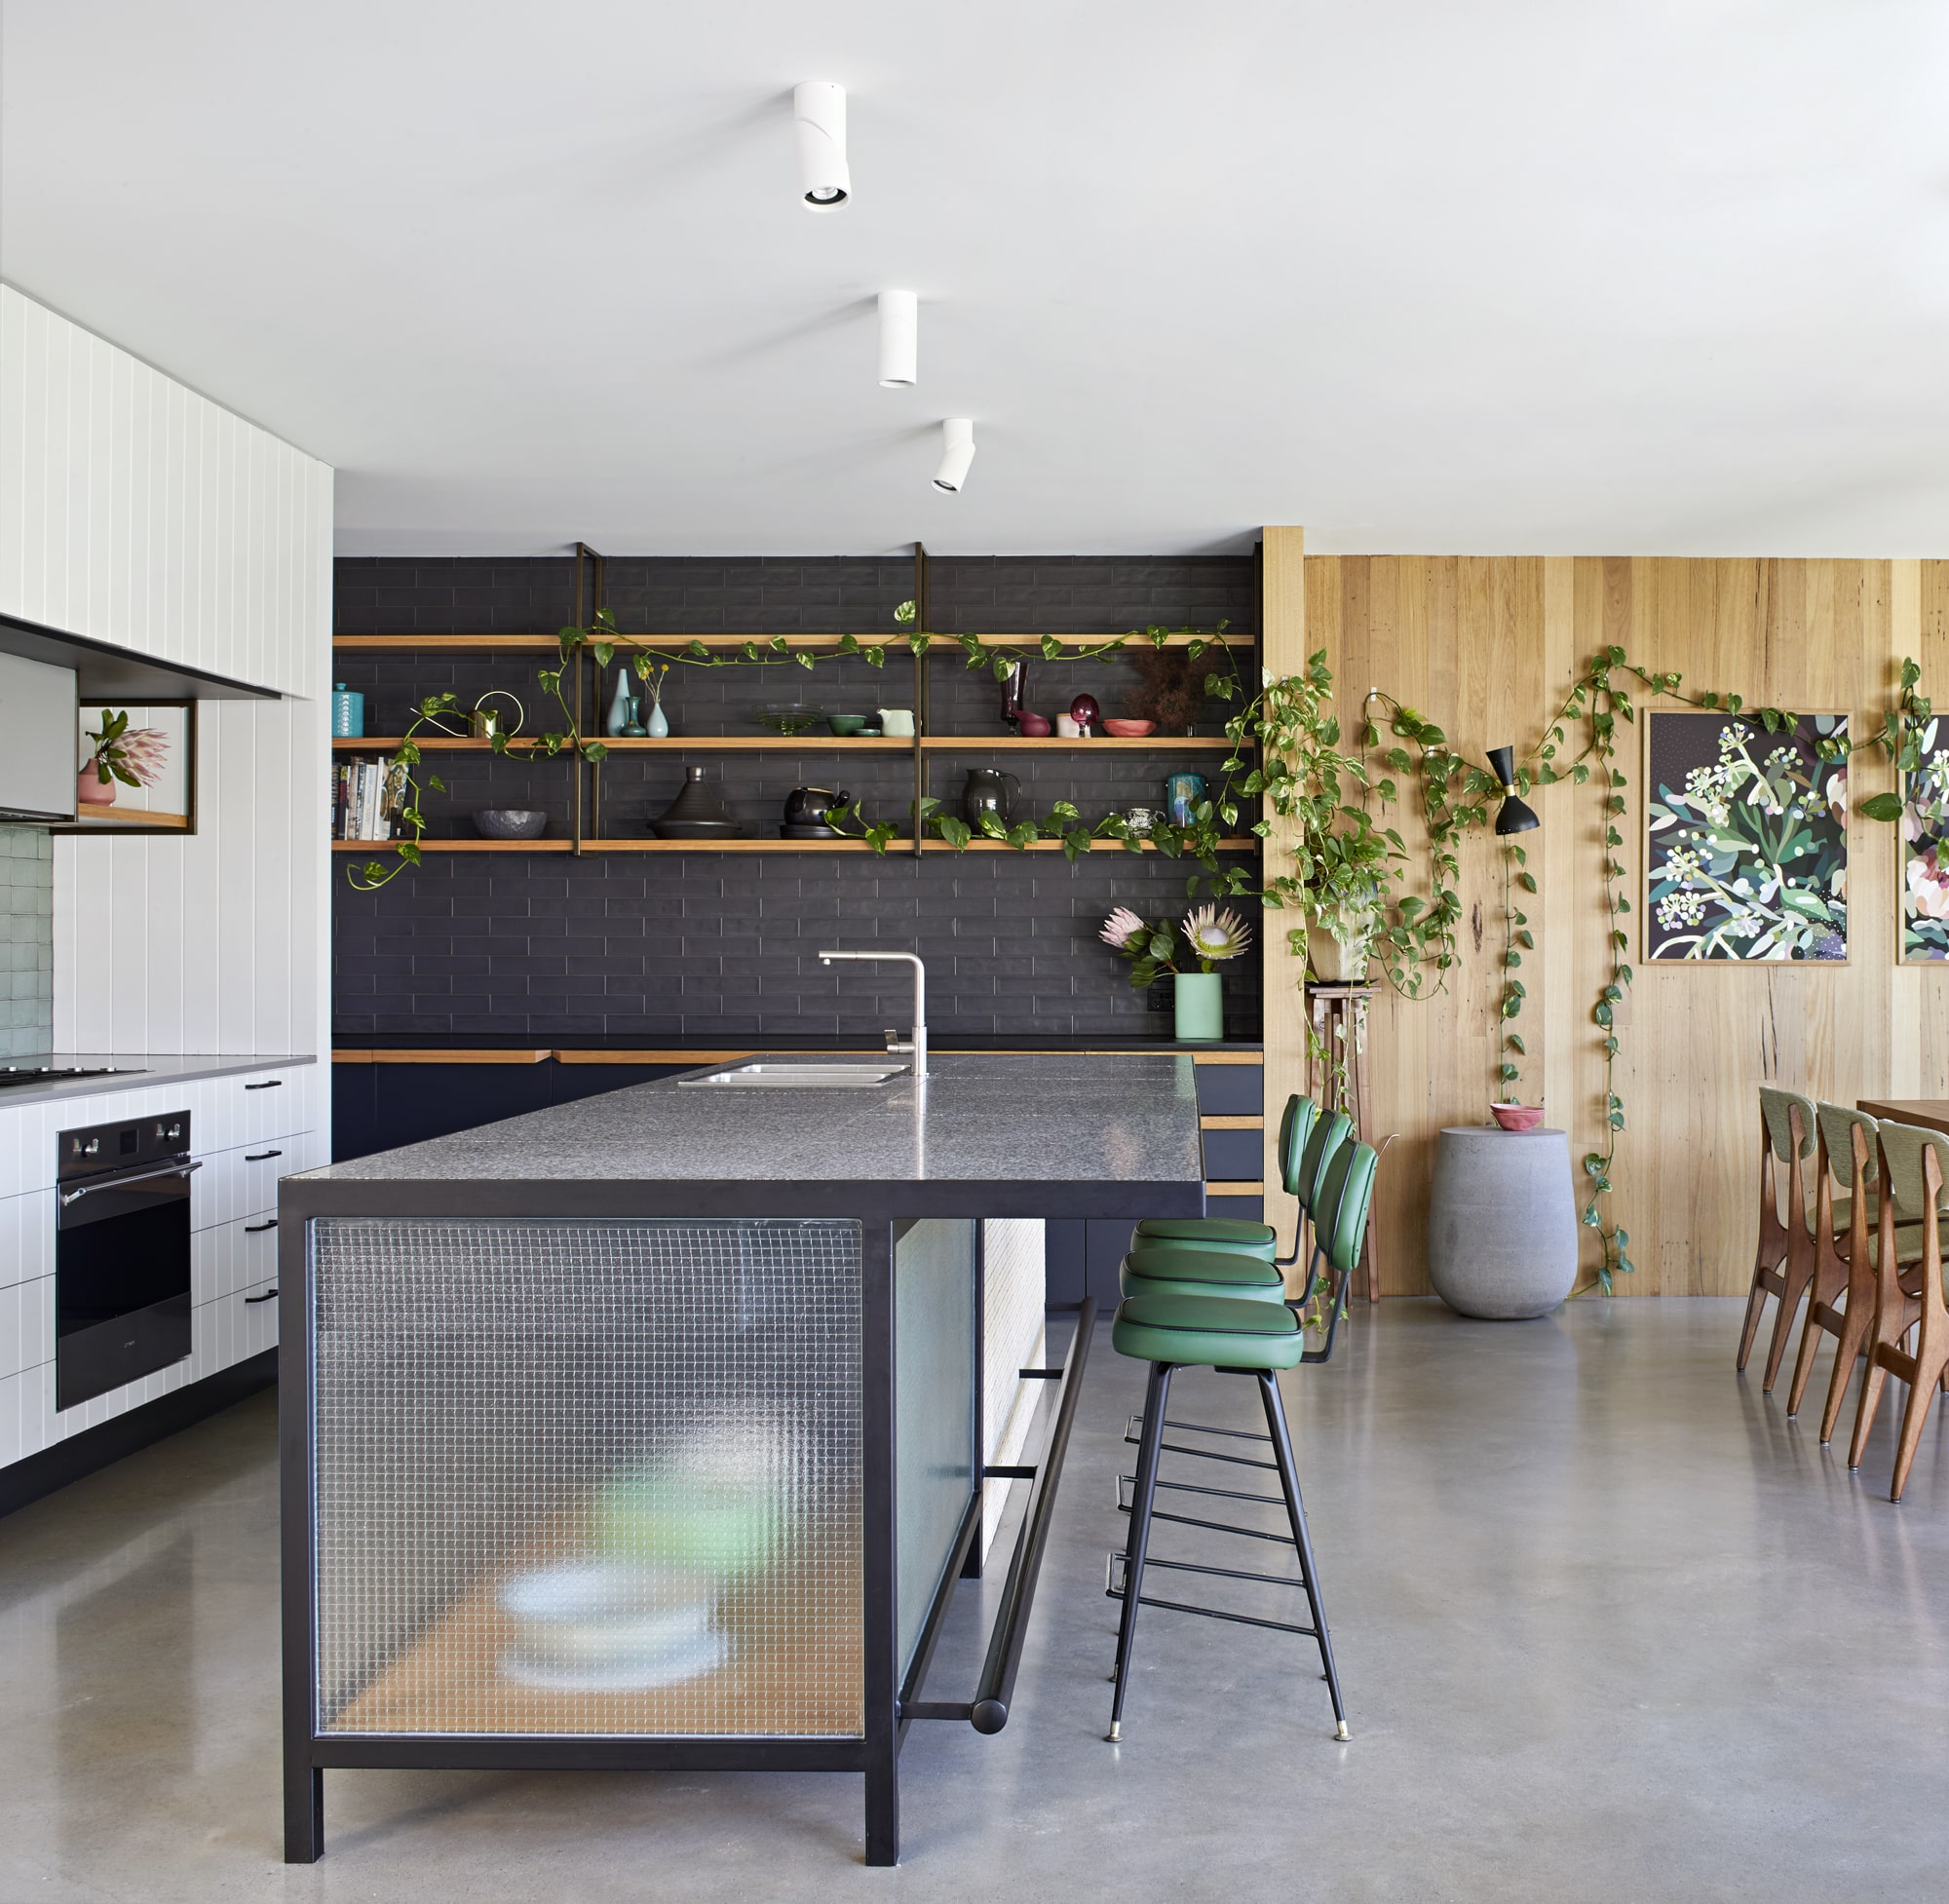 The Trick To Make The Annexe Feel Like A Part Of The Garden Is Creating Green Spaces On Both Sides